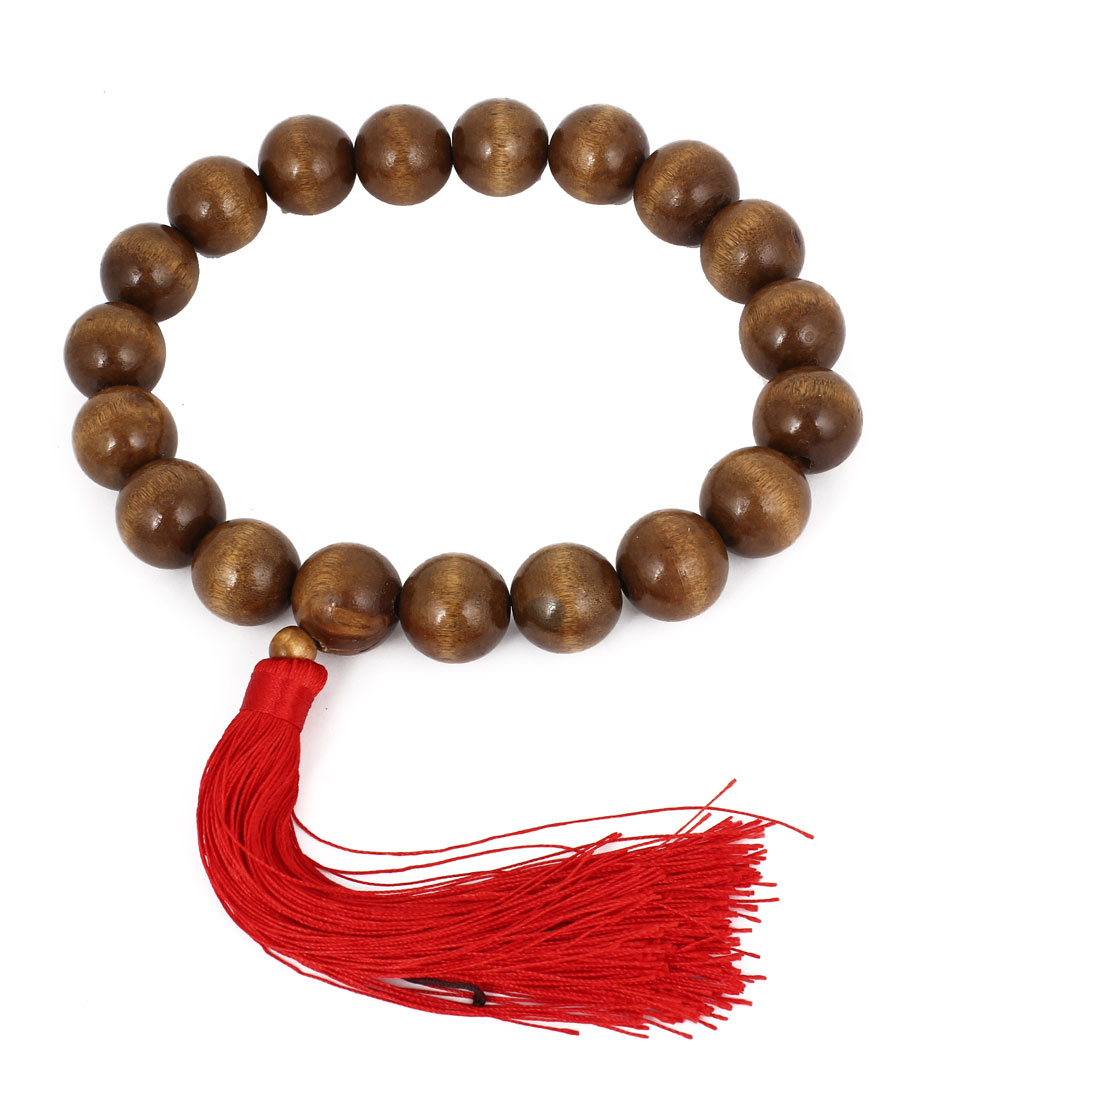 Red Nylon Tassel Detail Coffee Color Wooden Buddha Buddhism Buddhist Bead Bracelet